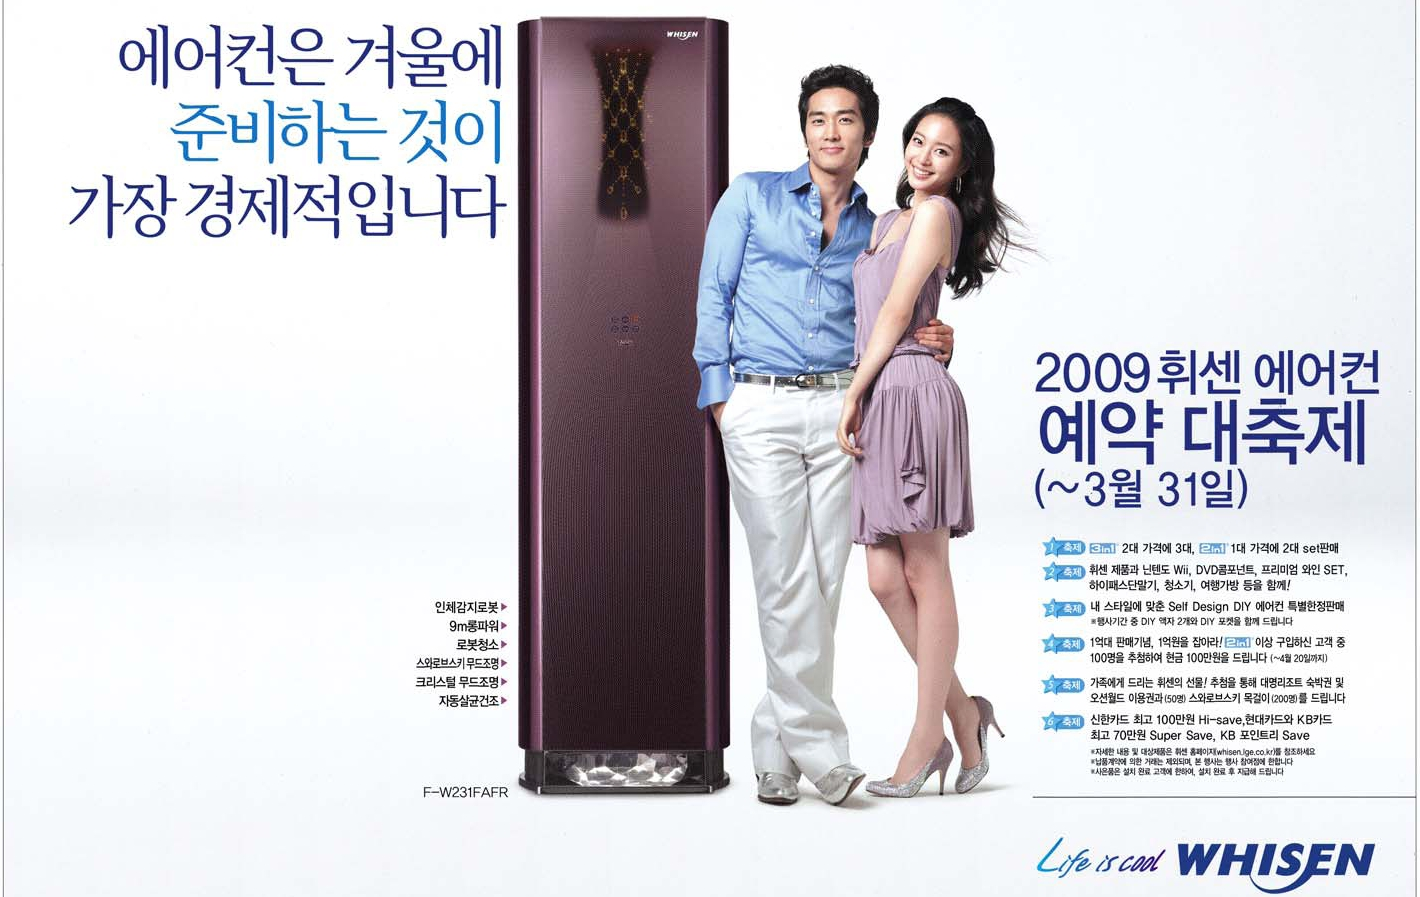 whisen-air-conditioner-advertisement-han-ye-seul-song-seung-hun